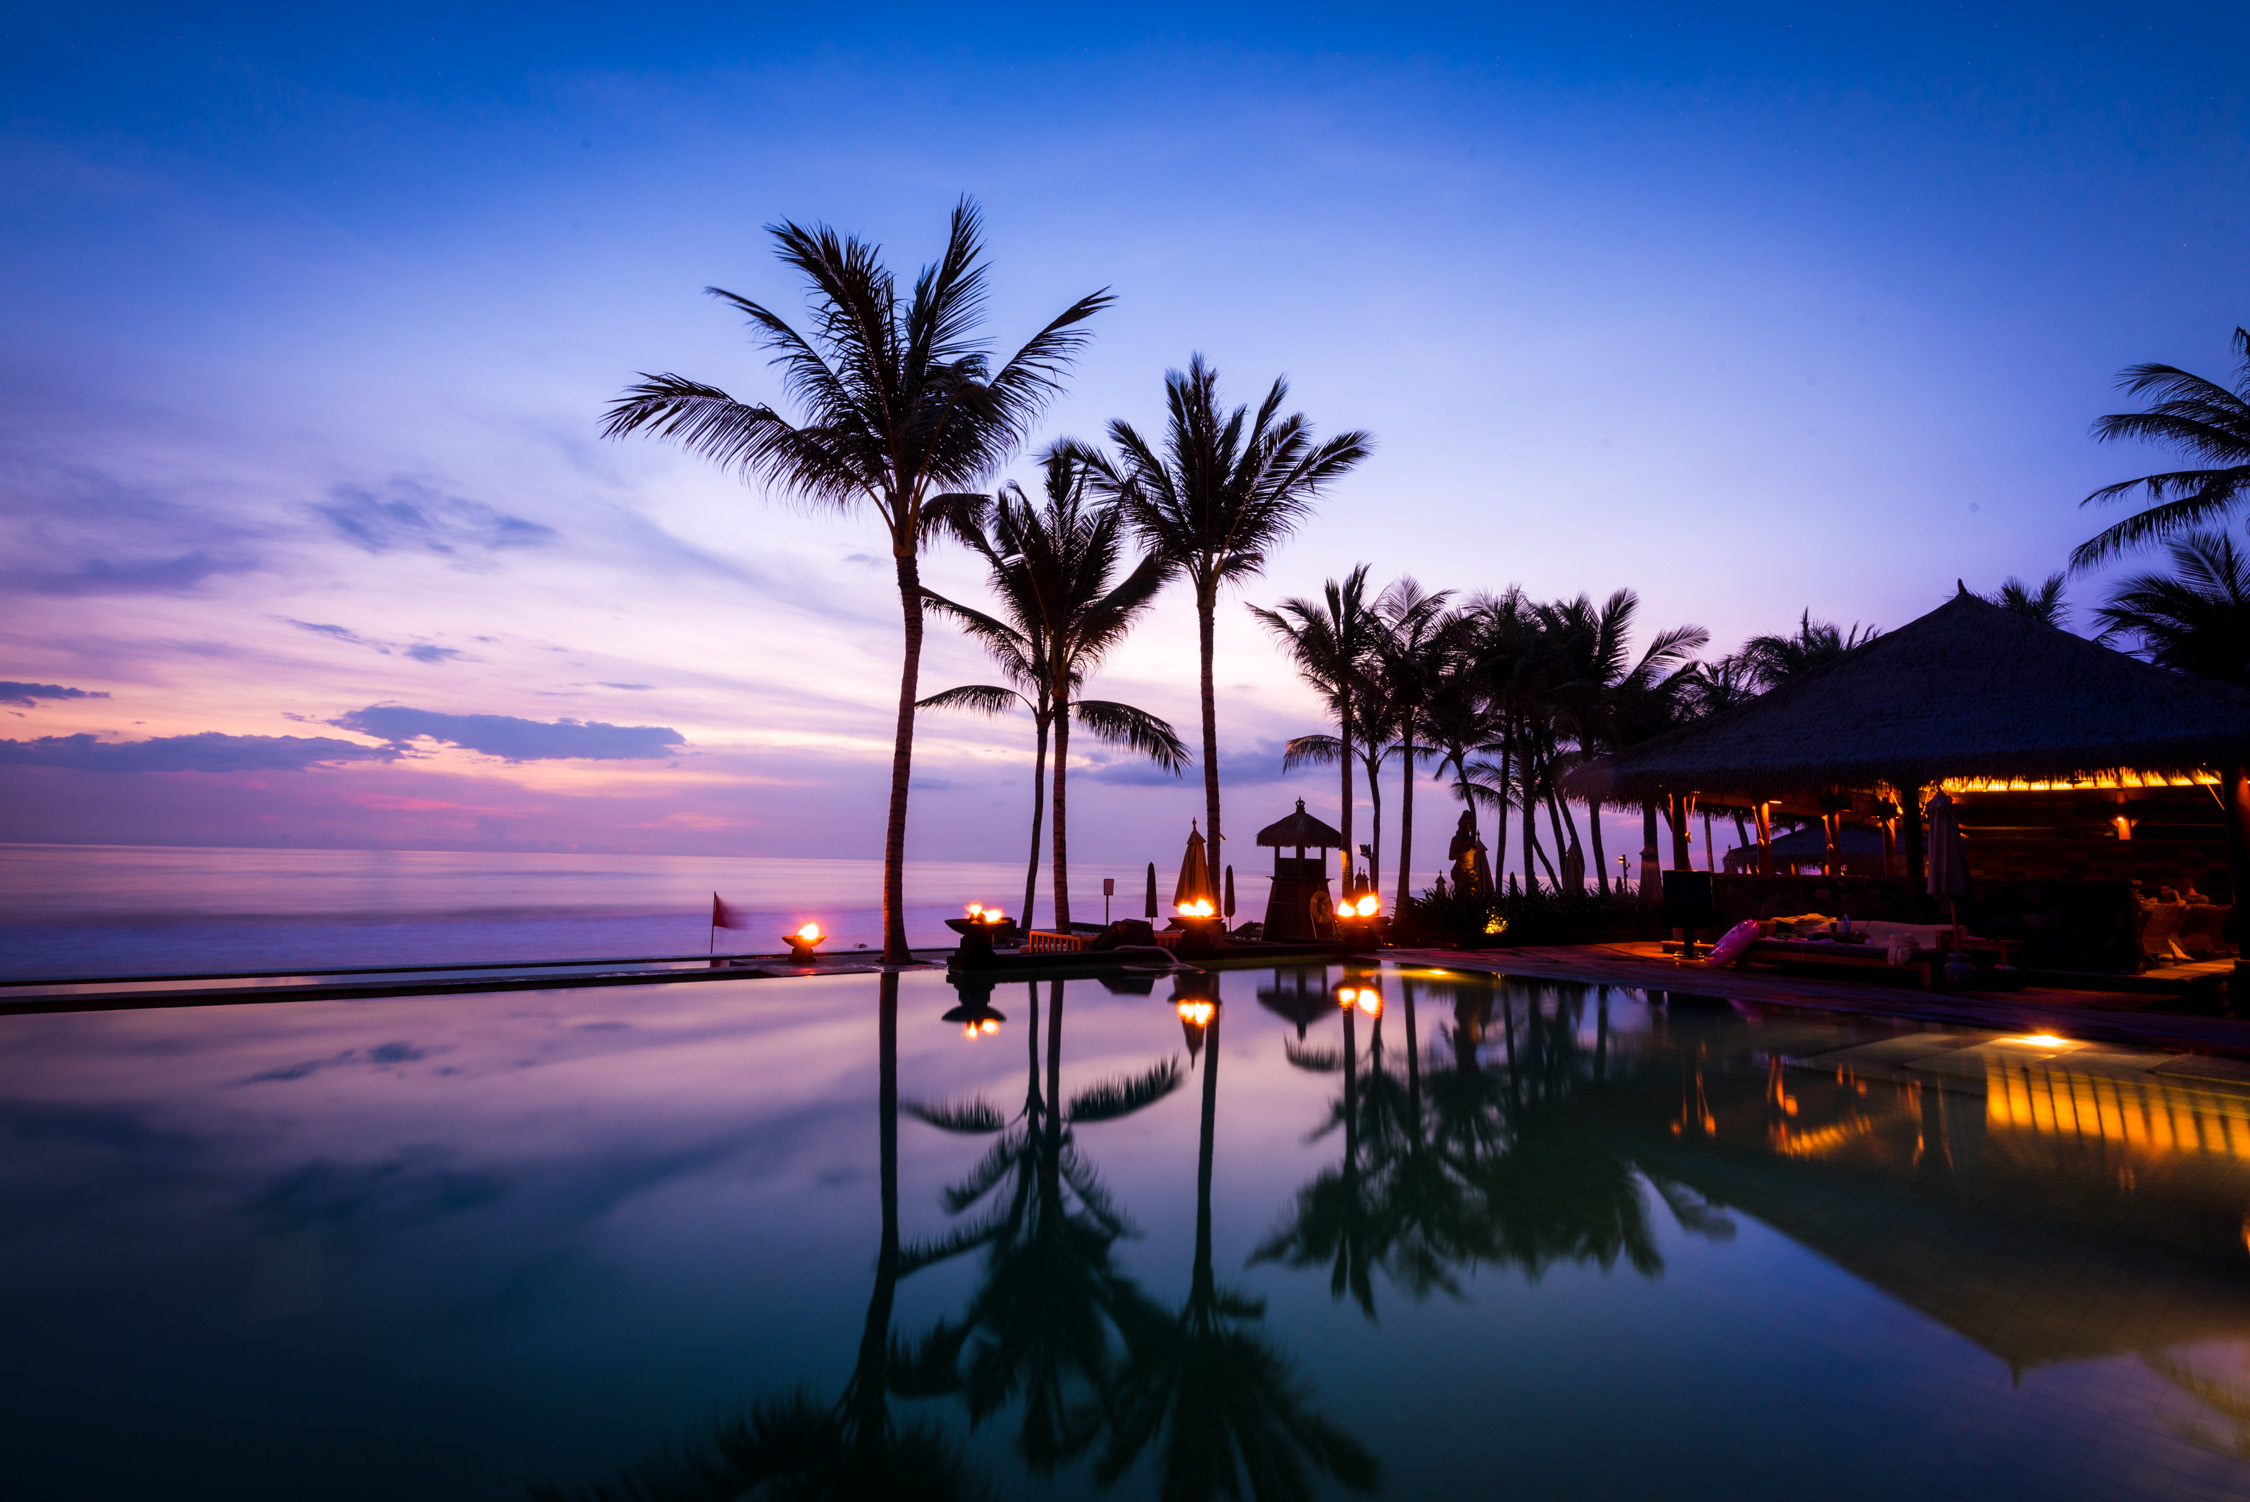 Discover the World's Best Luxury Hotels & Resorts   TasteInHotels showcases the world's most beautiful hotels & resorts — from exclusive cliffside suites in Santorini to luxurious overwater villas in the Maldives — as seen through the eyes of today's most in-the-know travelers